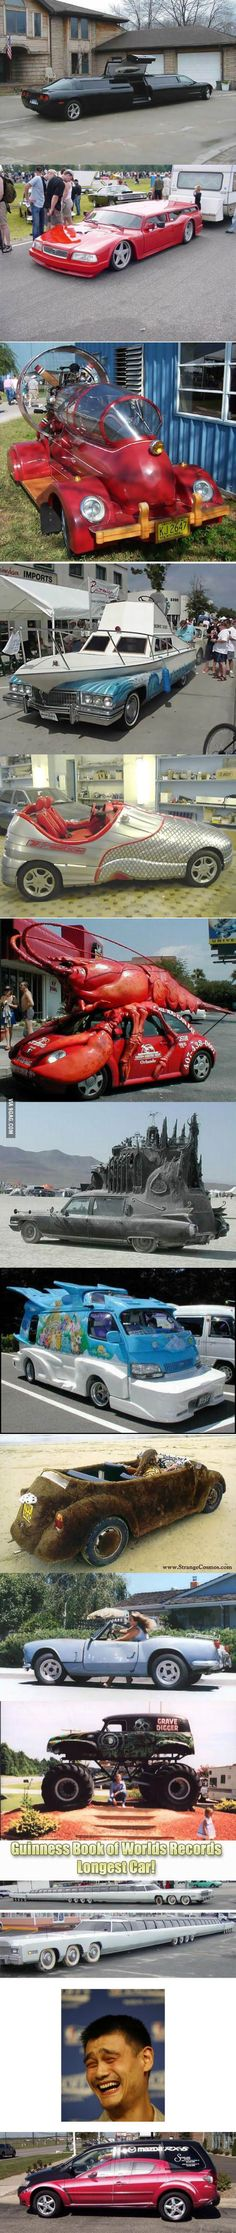 Just cars!